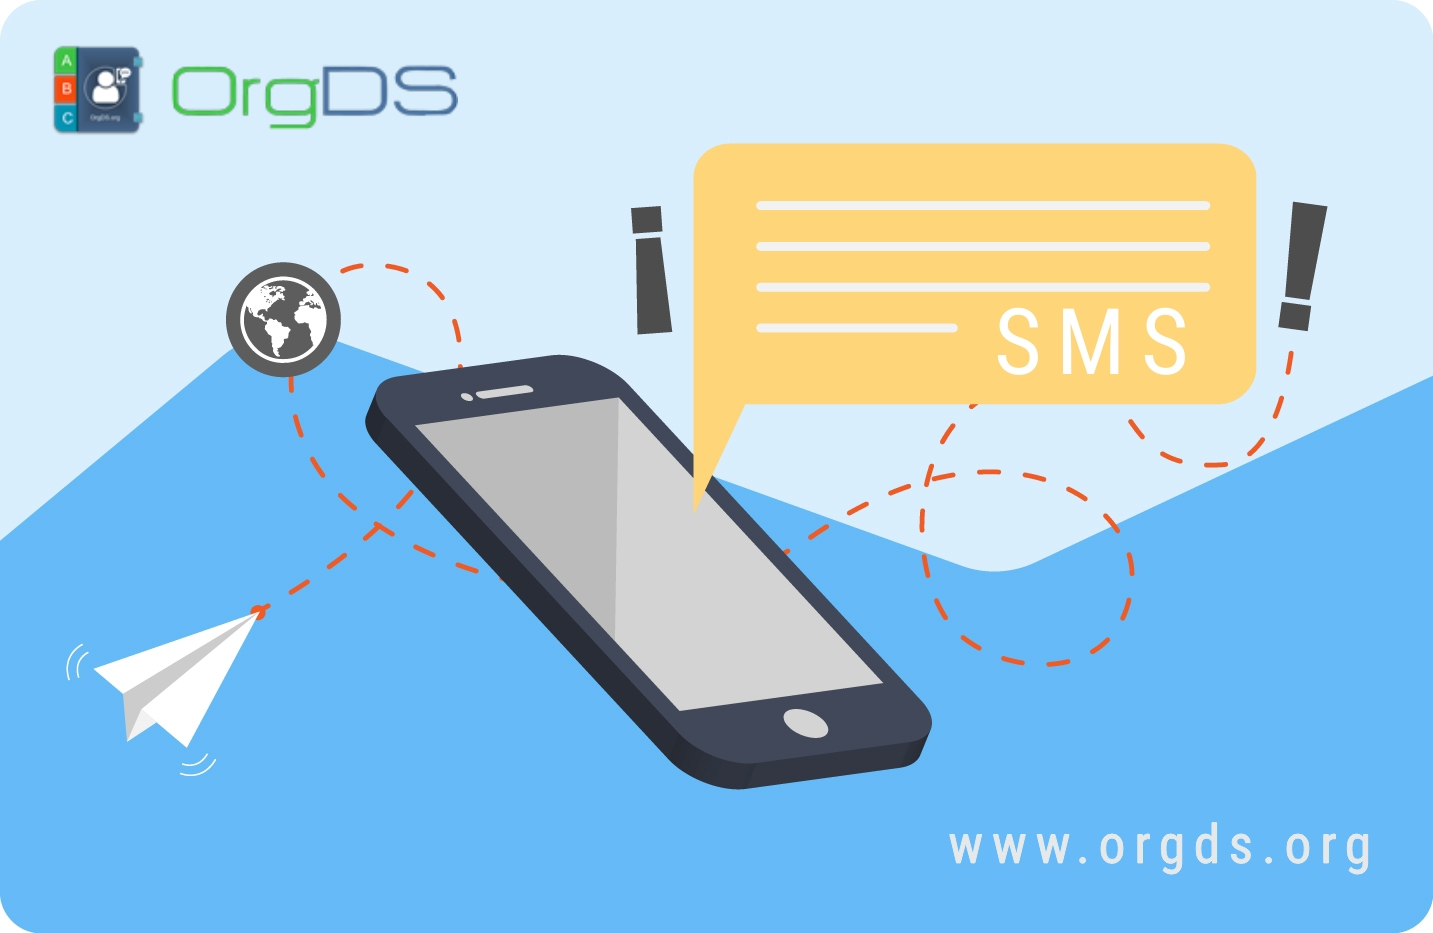 OrgDS.org